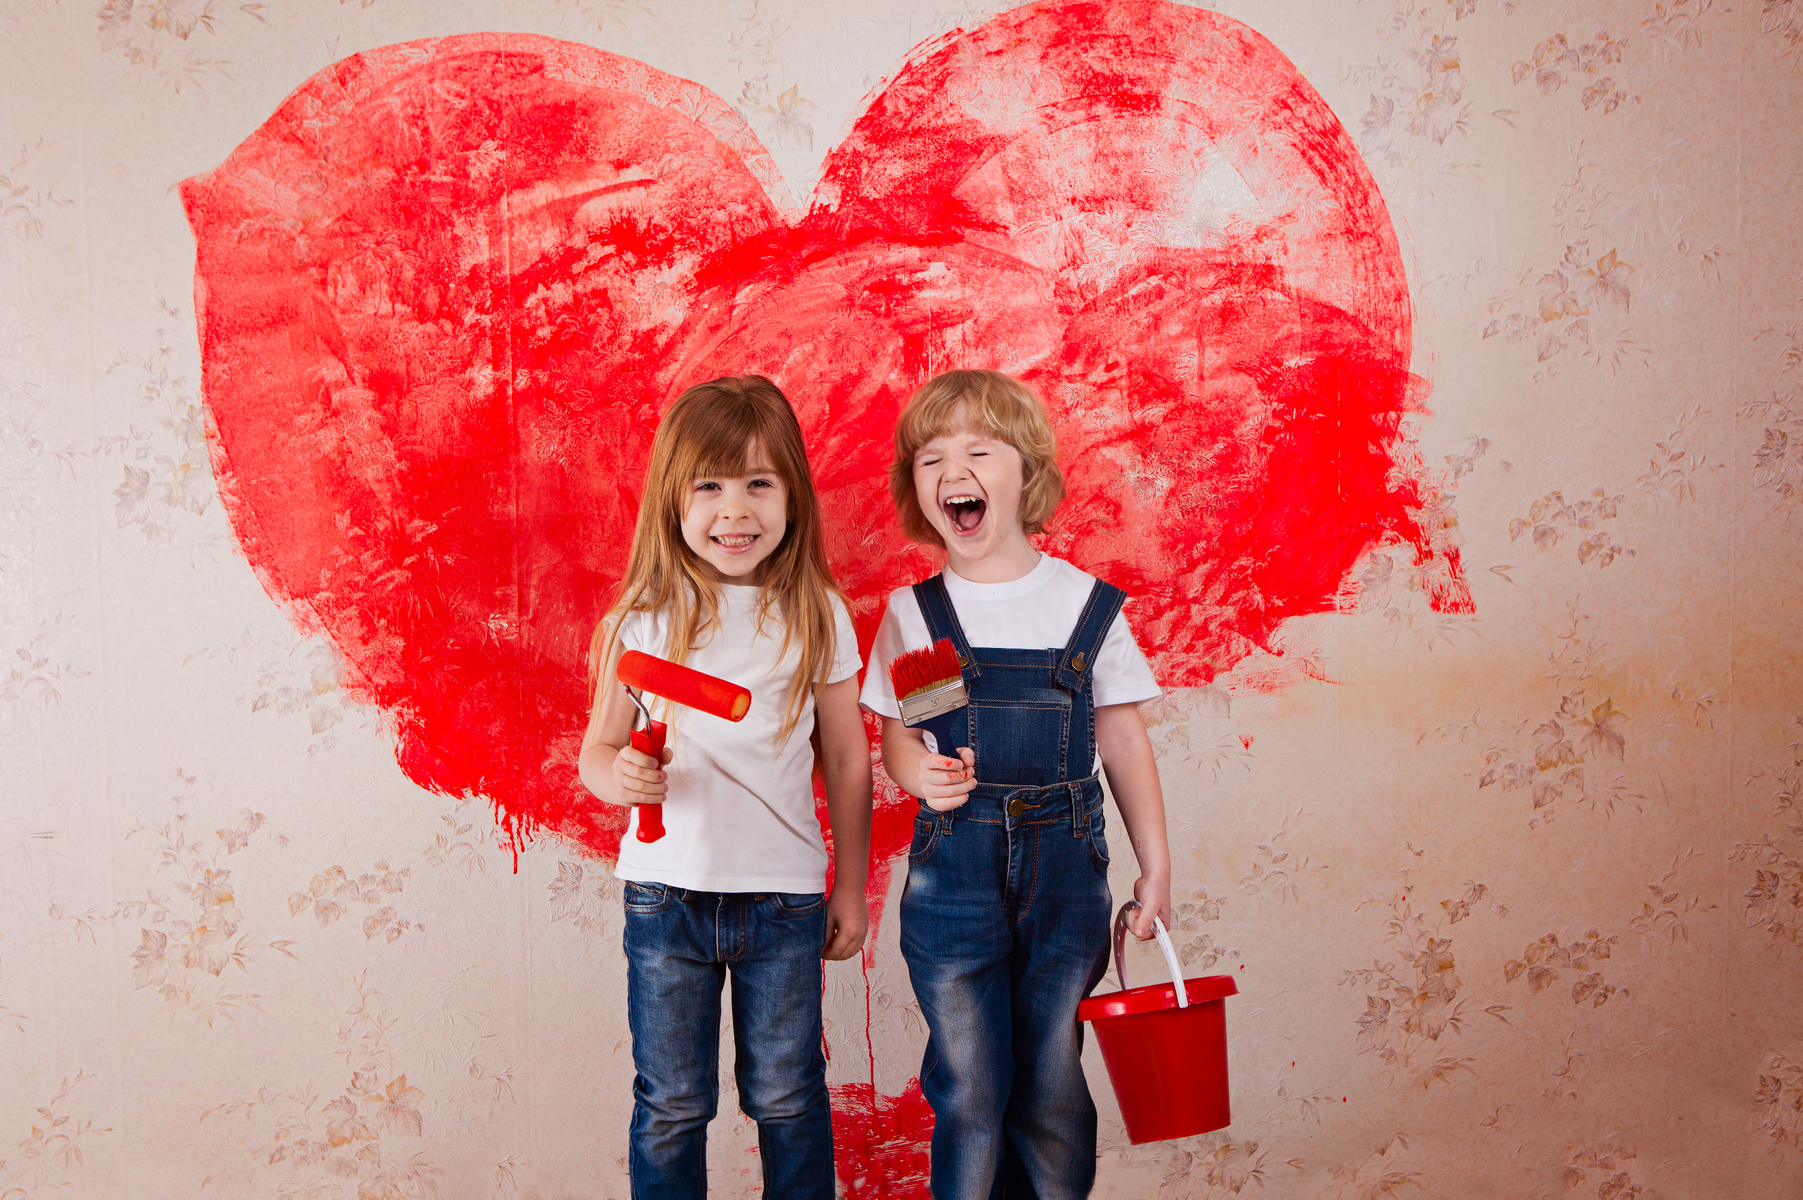 Teaching Your Kids About Love and Romance